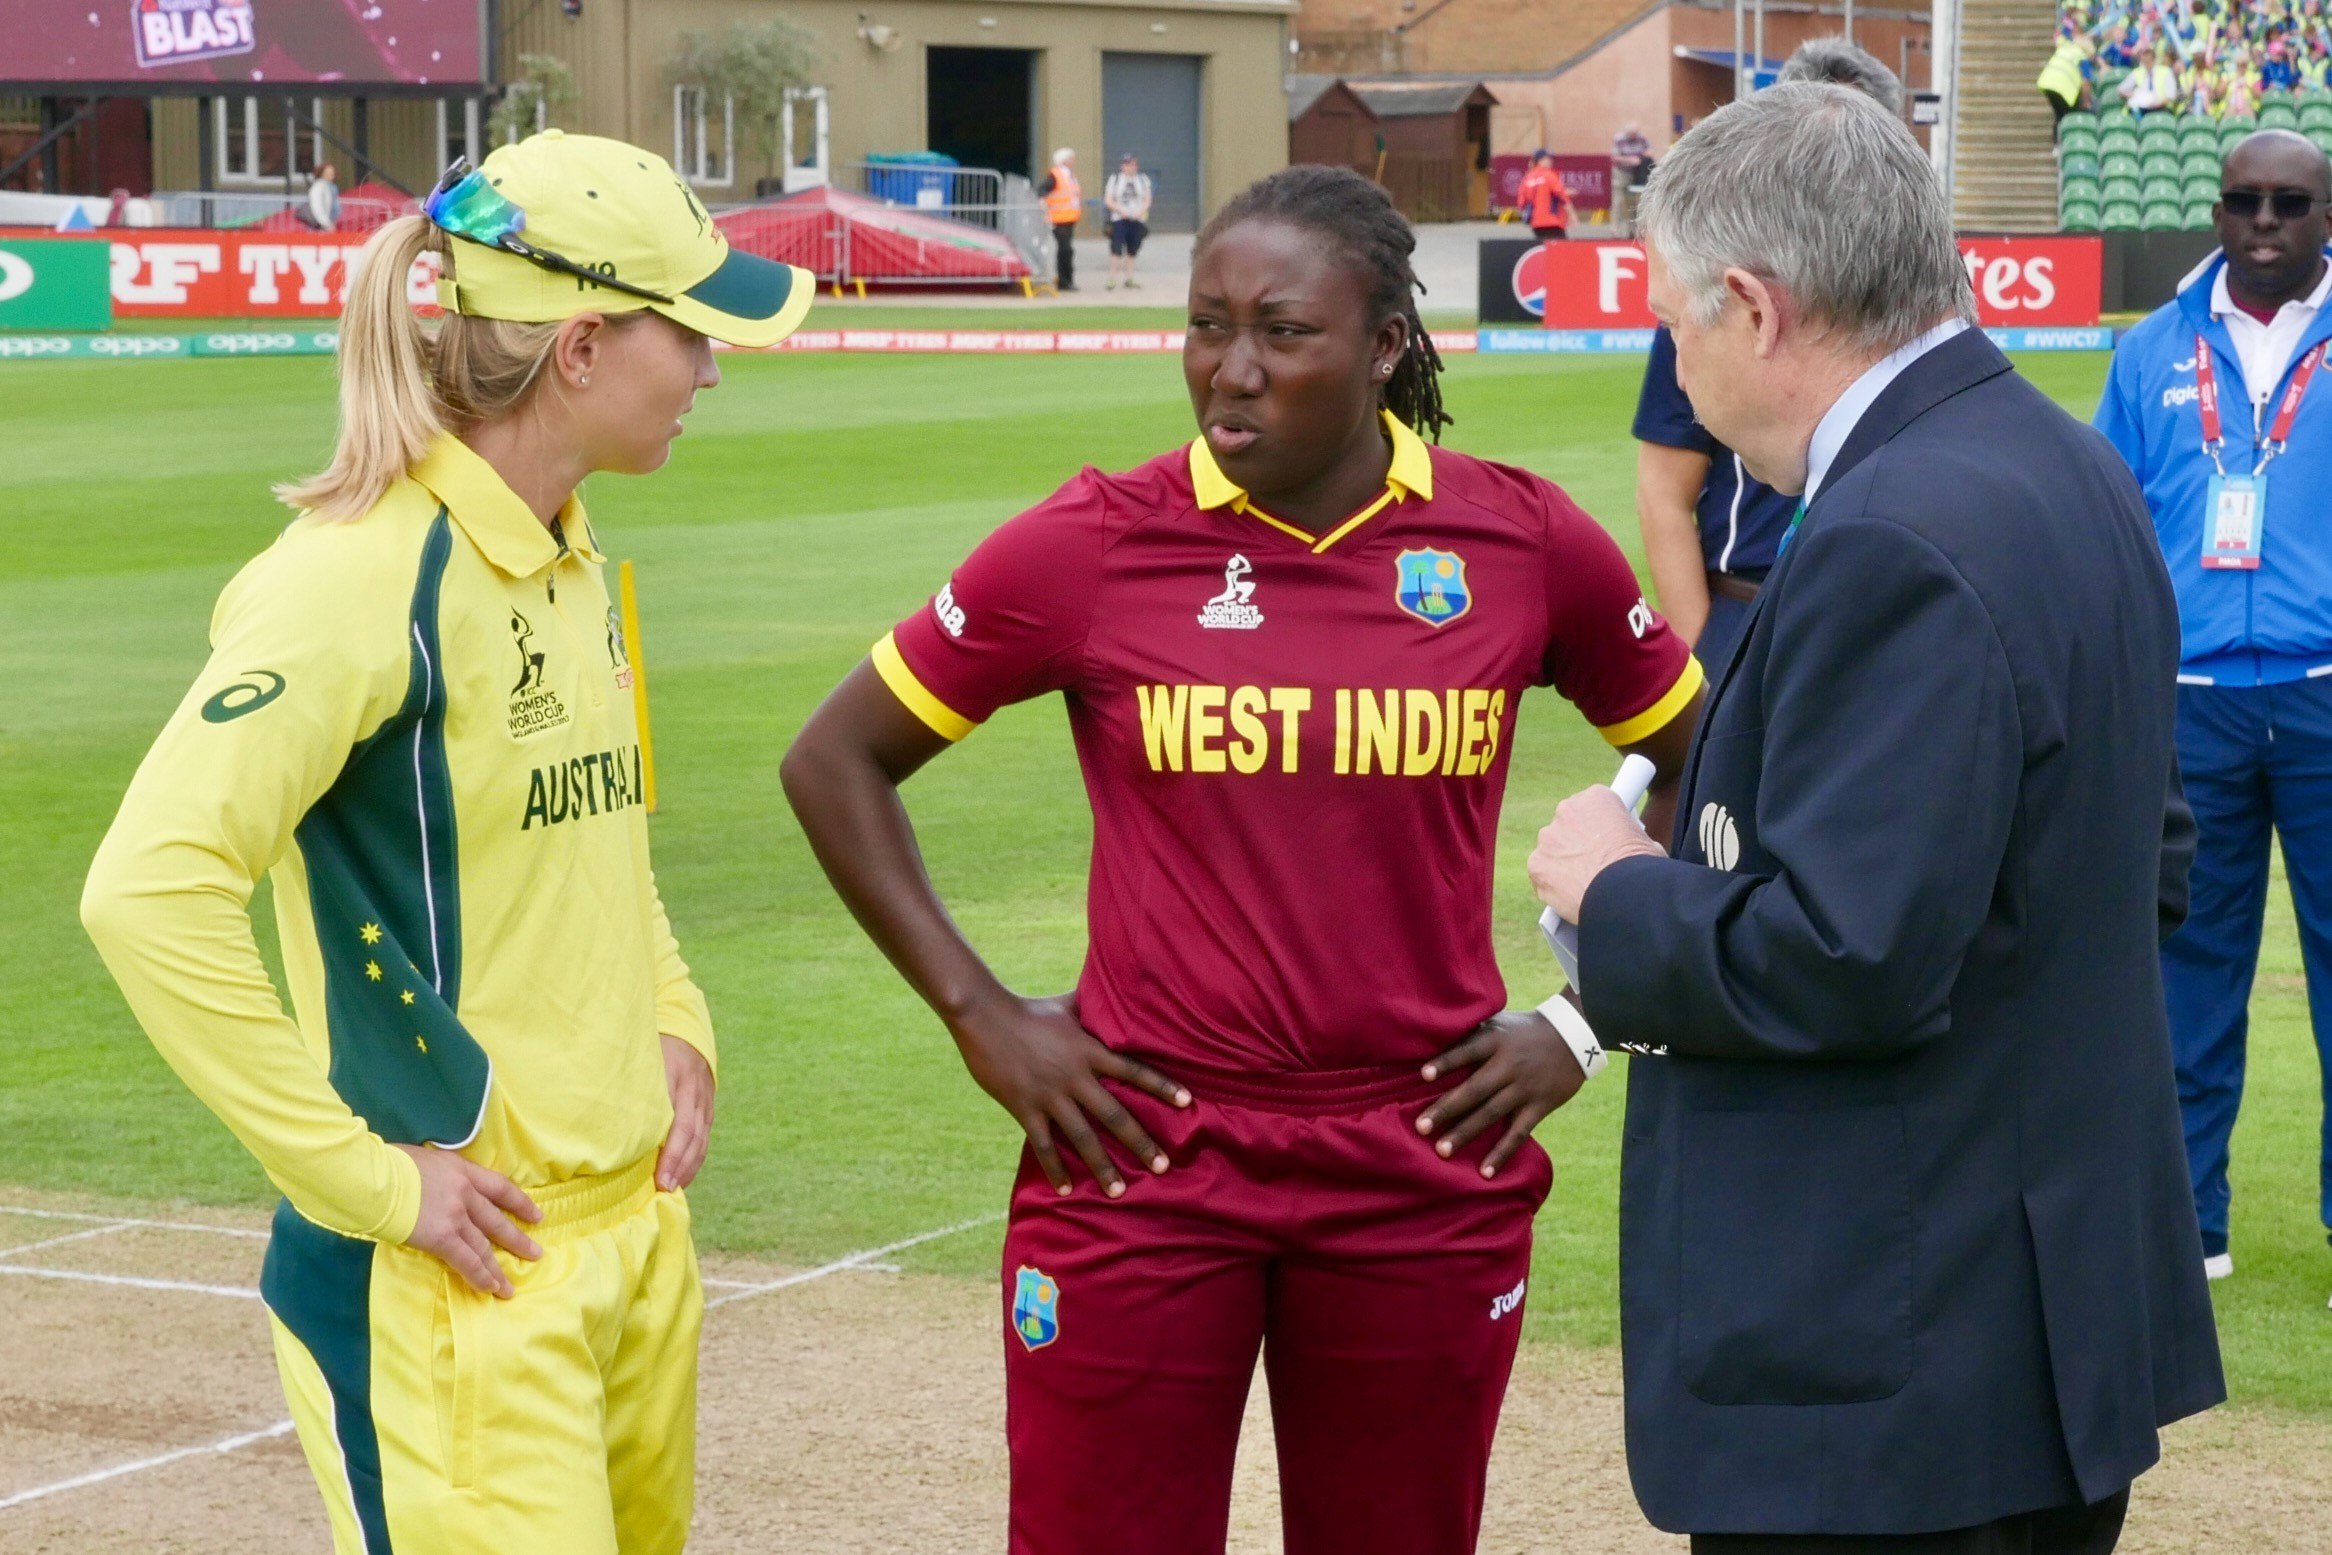 Lanning and Taylor argue the toss with match referee David Jukes // cricket.com.au